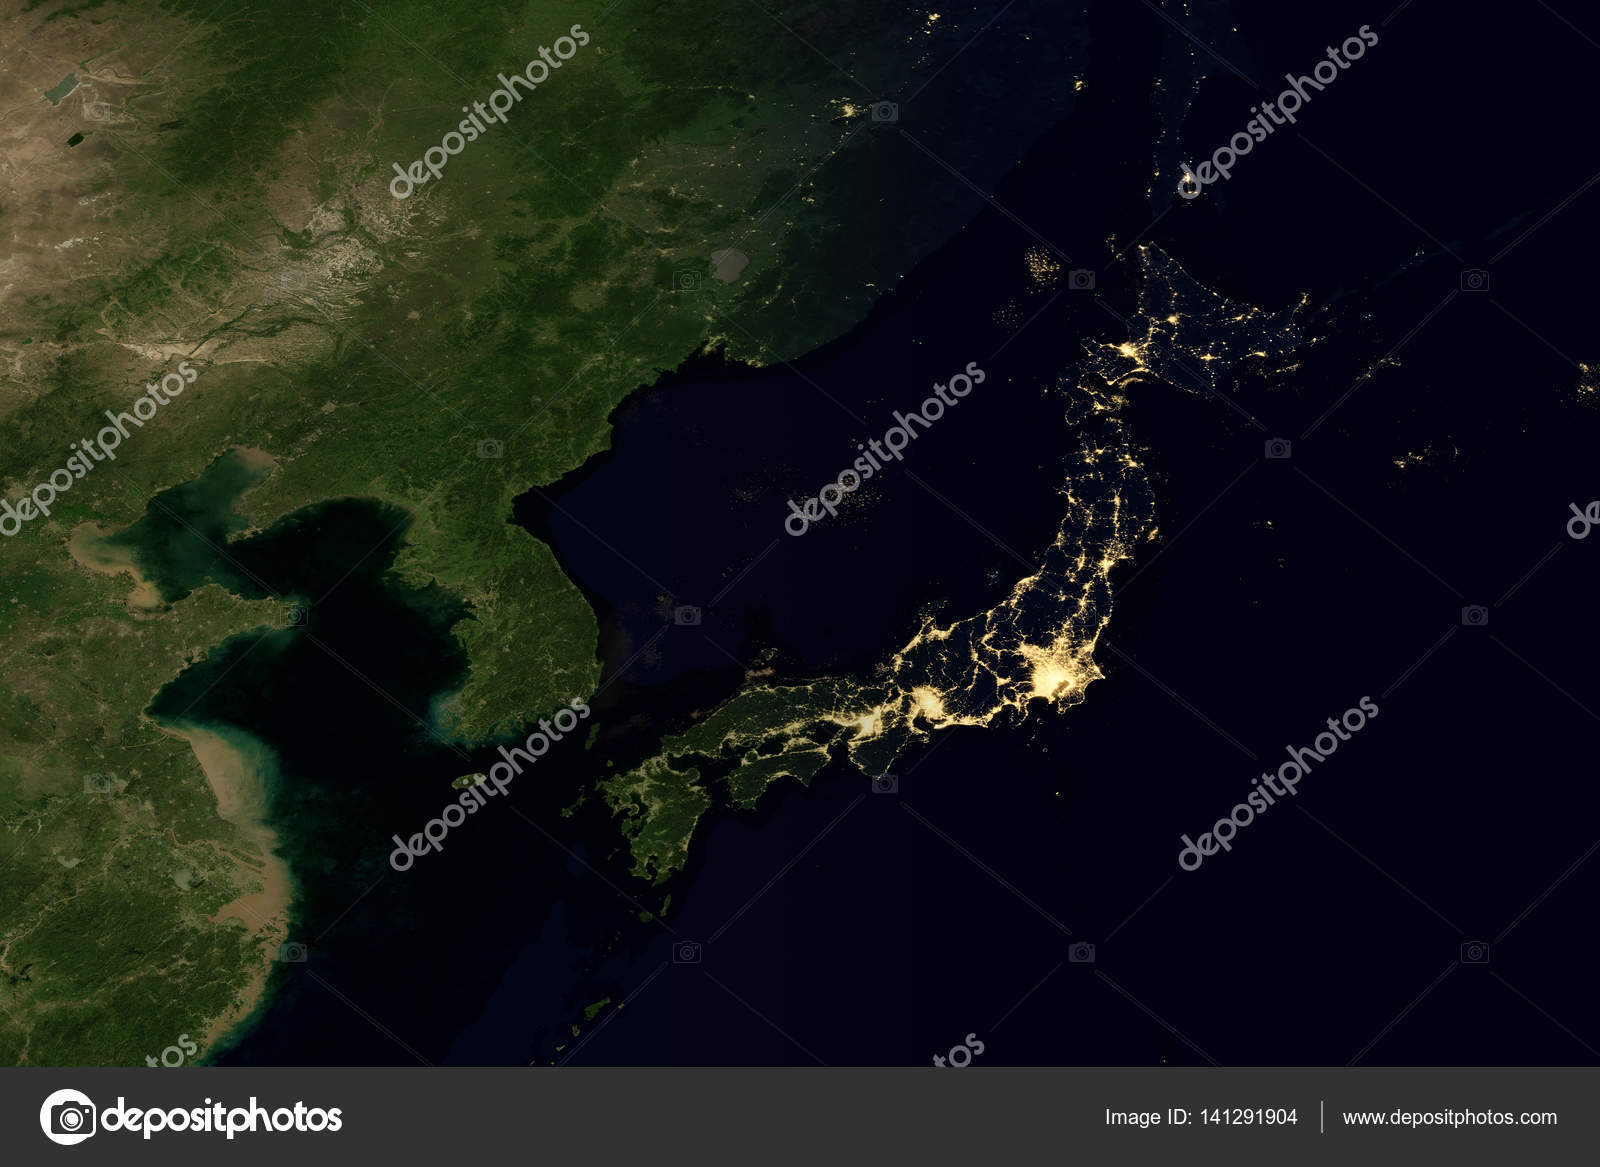 City lights on world map japan stock photo nasaage 141291904 city lights on world map japan elements of this image are furnished by nasa photo by nasaage gumiabroncs Image collections